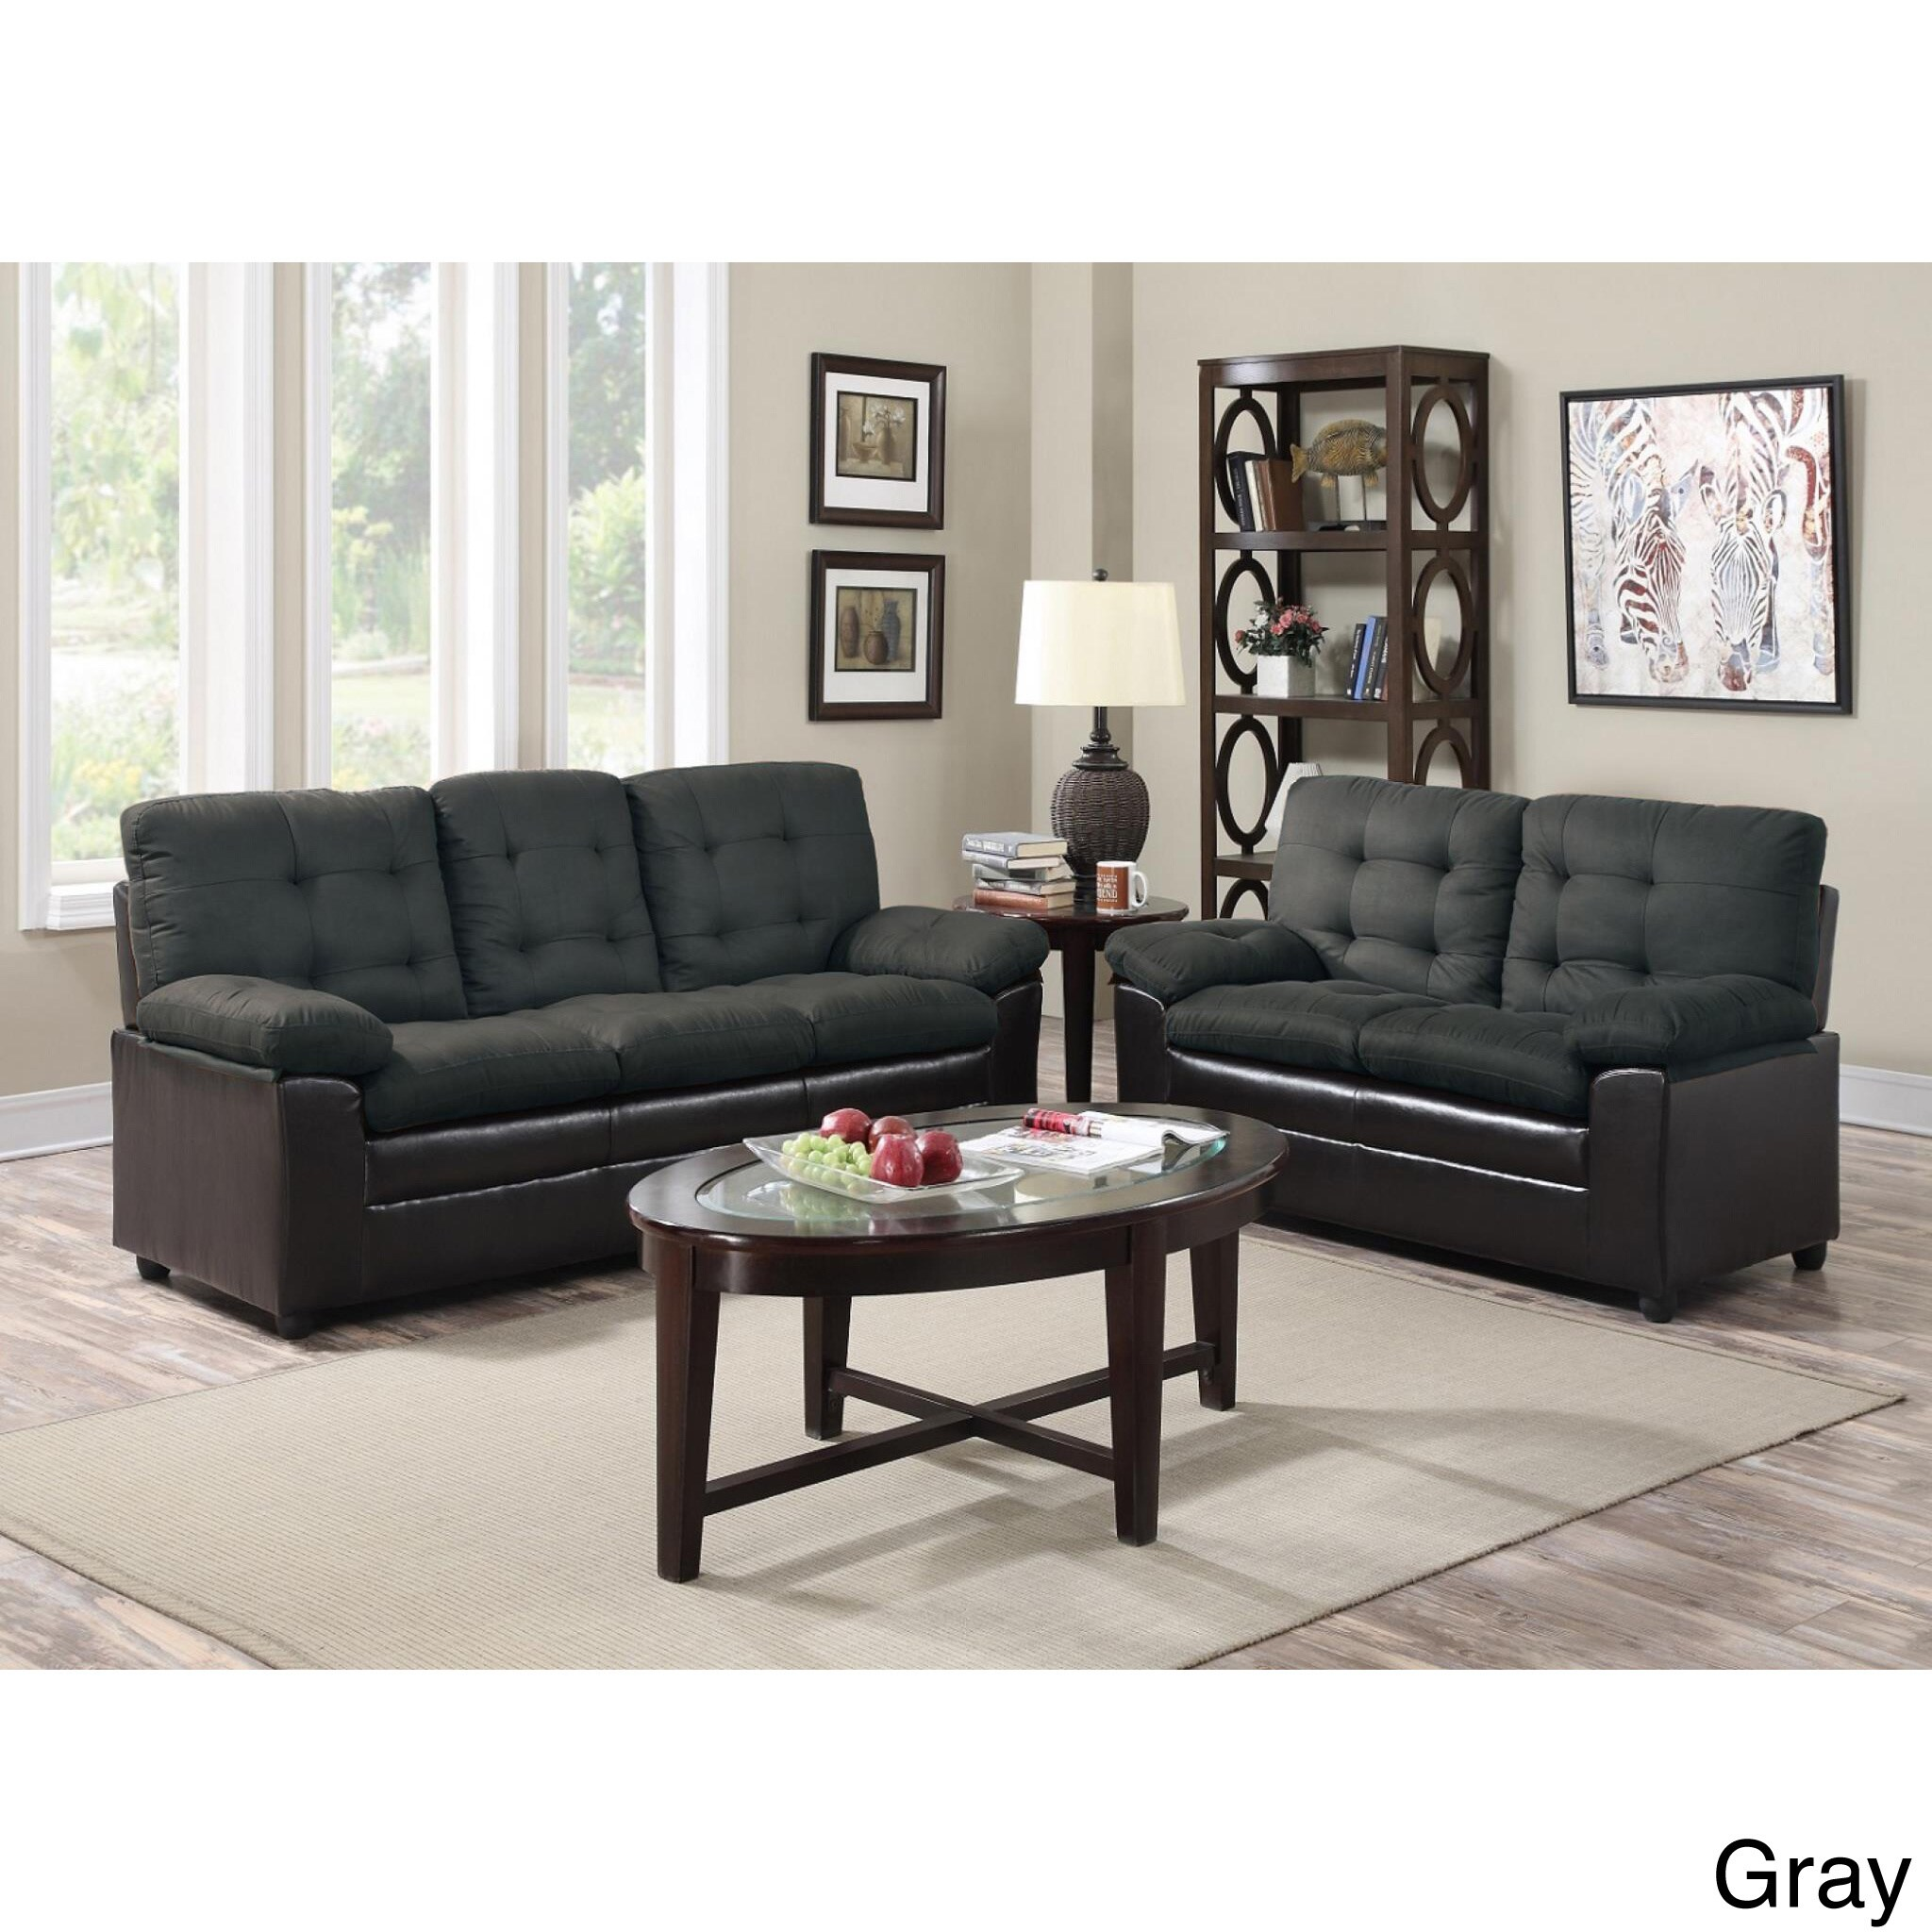 Shop Two Tone Microfiber Sofa And Loveseat Set   Free Shipping Today    Overstock.com   13445088